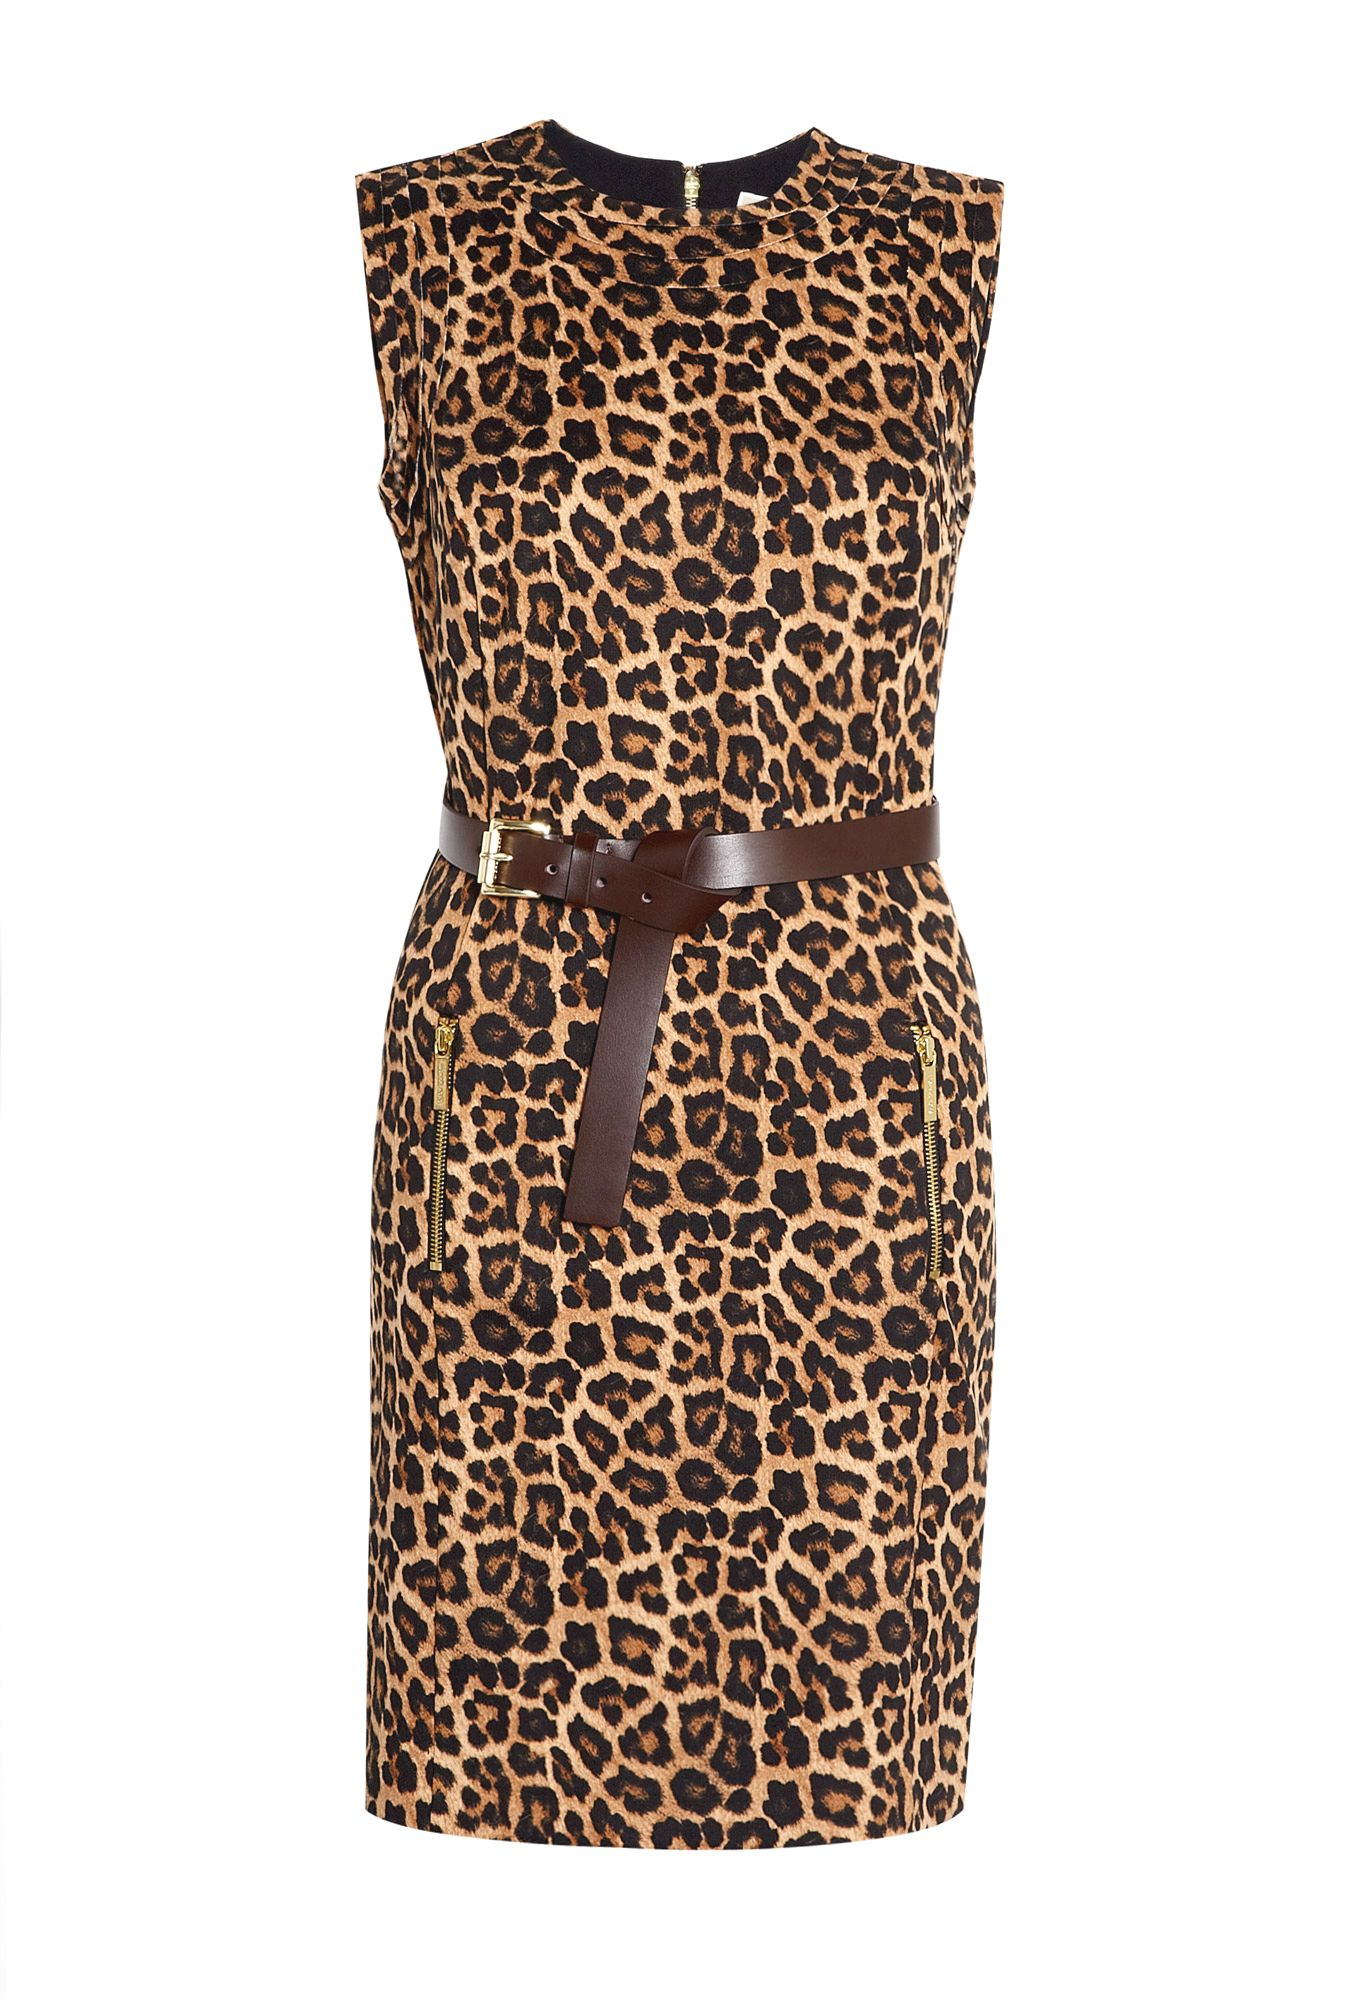 267d143b Jaguar Print Belted Ponte Shift Dress by Michael Kors | My style ...